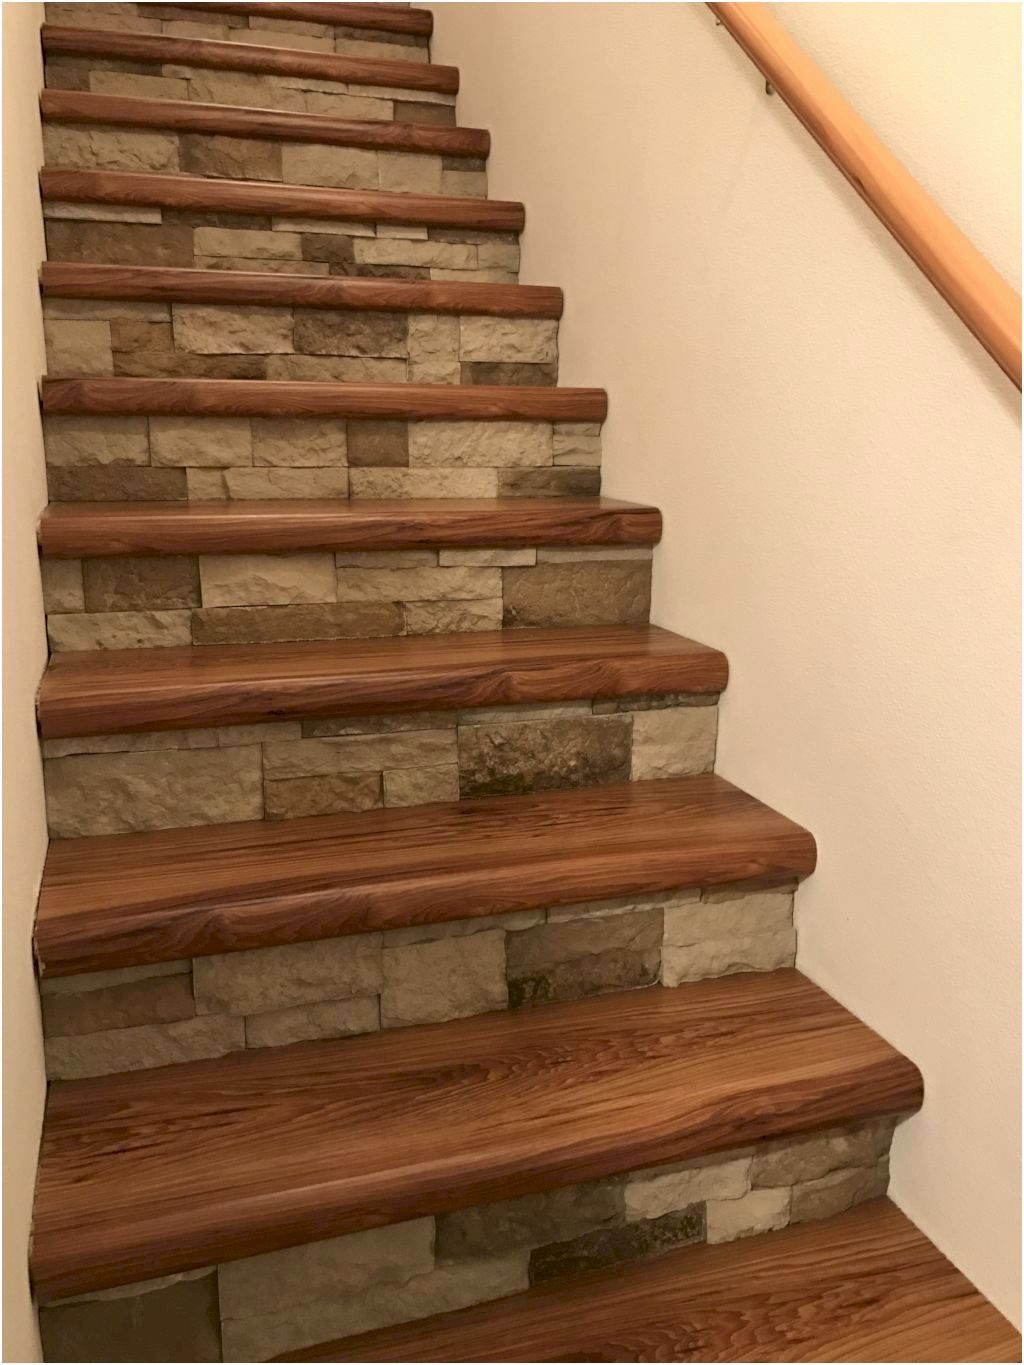 Hardwood Floors Upstairs Of 40 How to Put Laminate Flooring On Stairs Inspiration with Regard to How to Install Laminate Flooring Stairs with Railing Stock Pin Od Inspiration Of How to Put